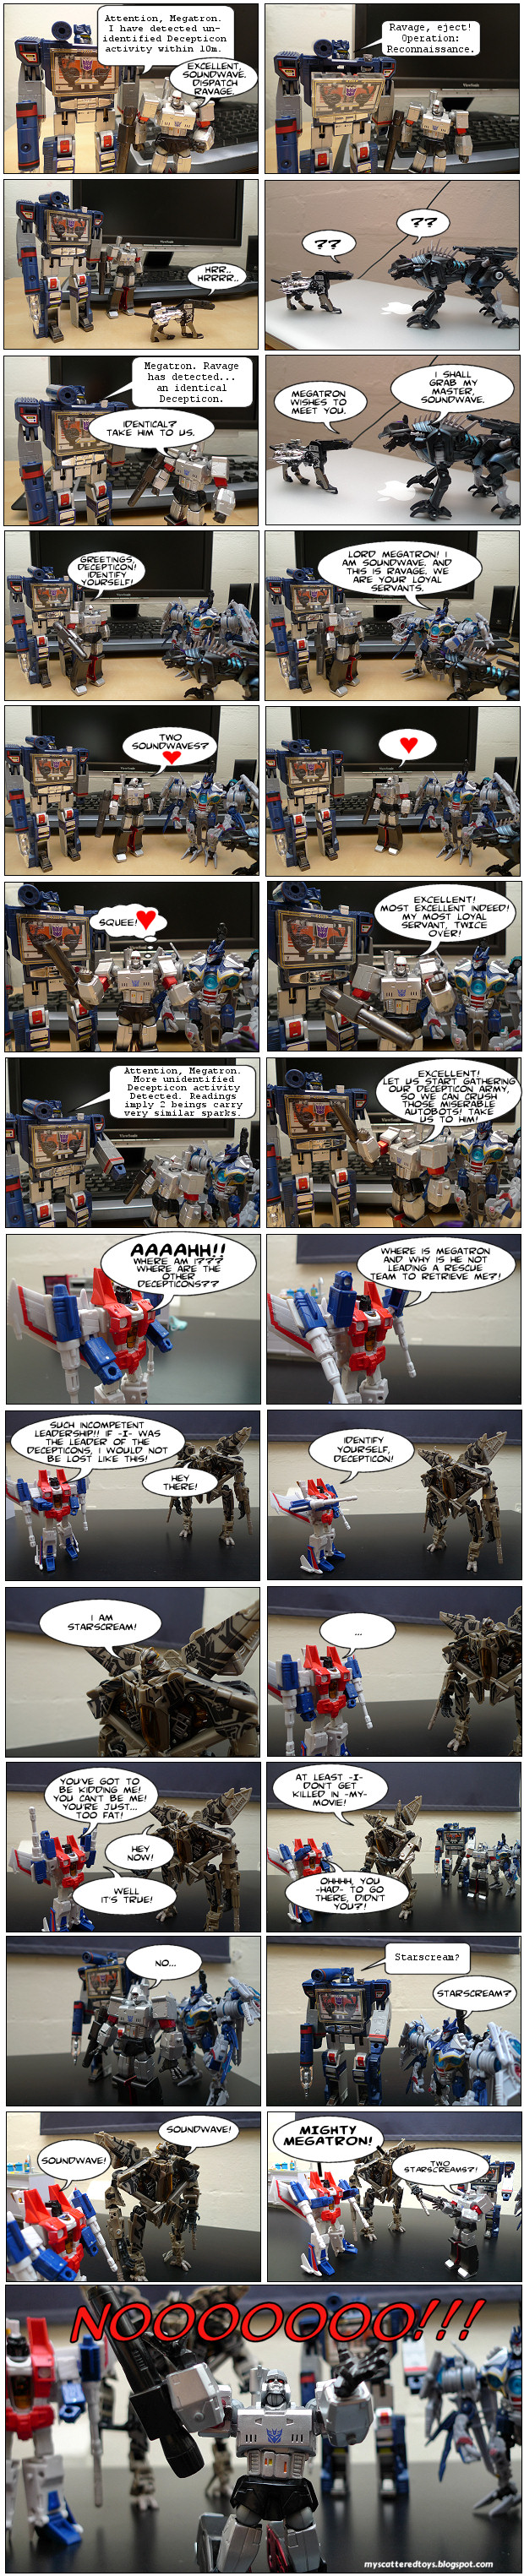 two good two be true - my toys are alive 08 transformers fan comic megatron soundwave starscream ravage